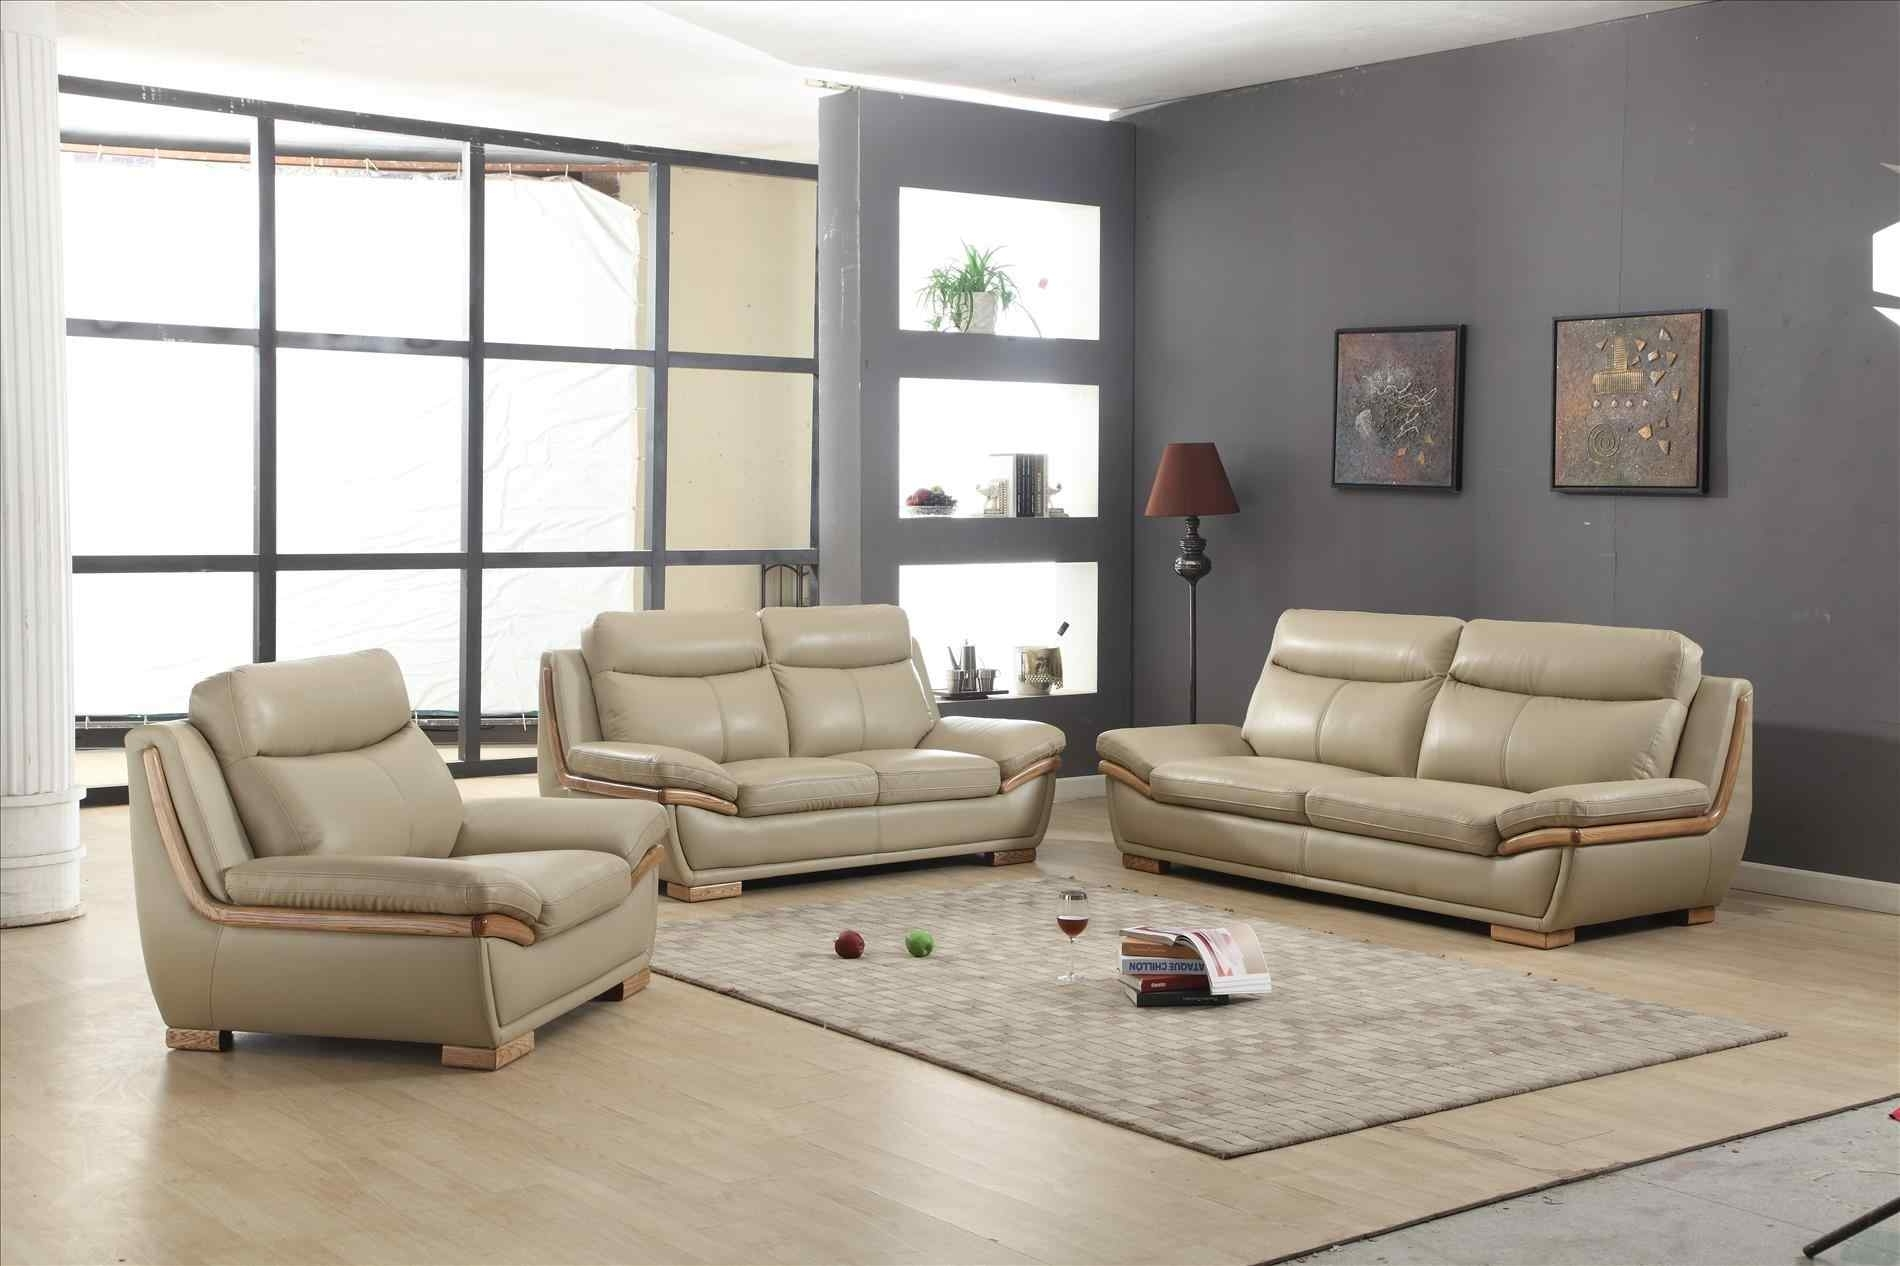 The Images Collection Of Couch Leather Modern Sectional Sofa Plus With San Francisco Sectional Sofas (View 5 of 10)